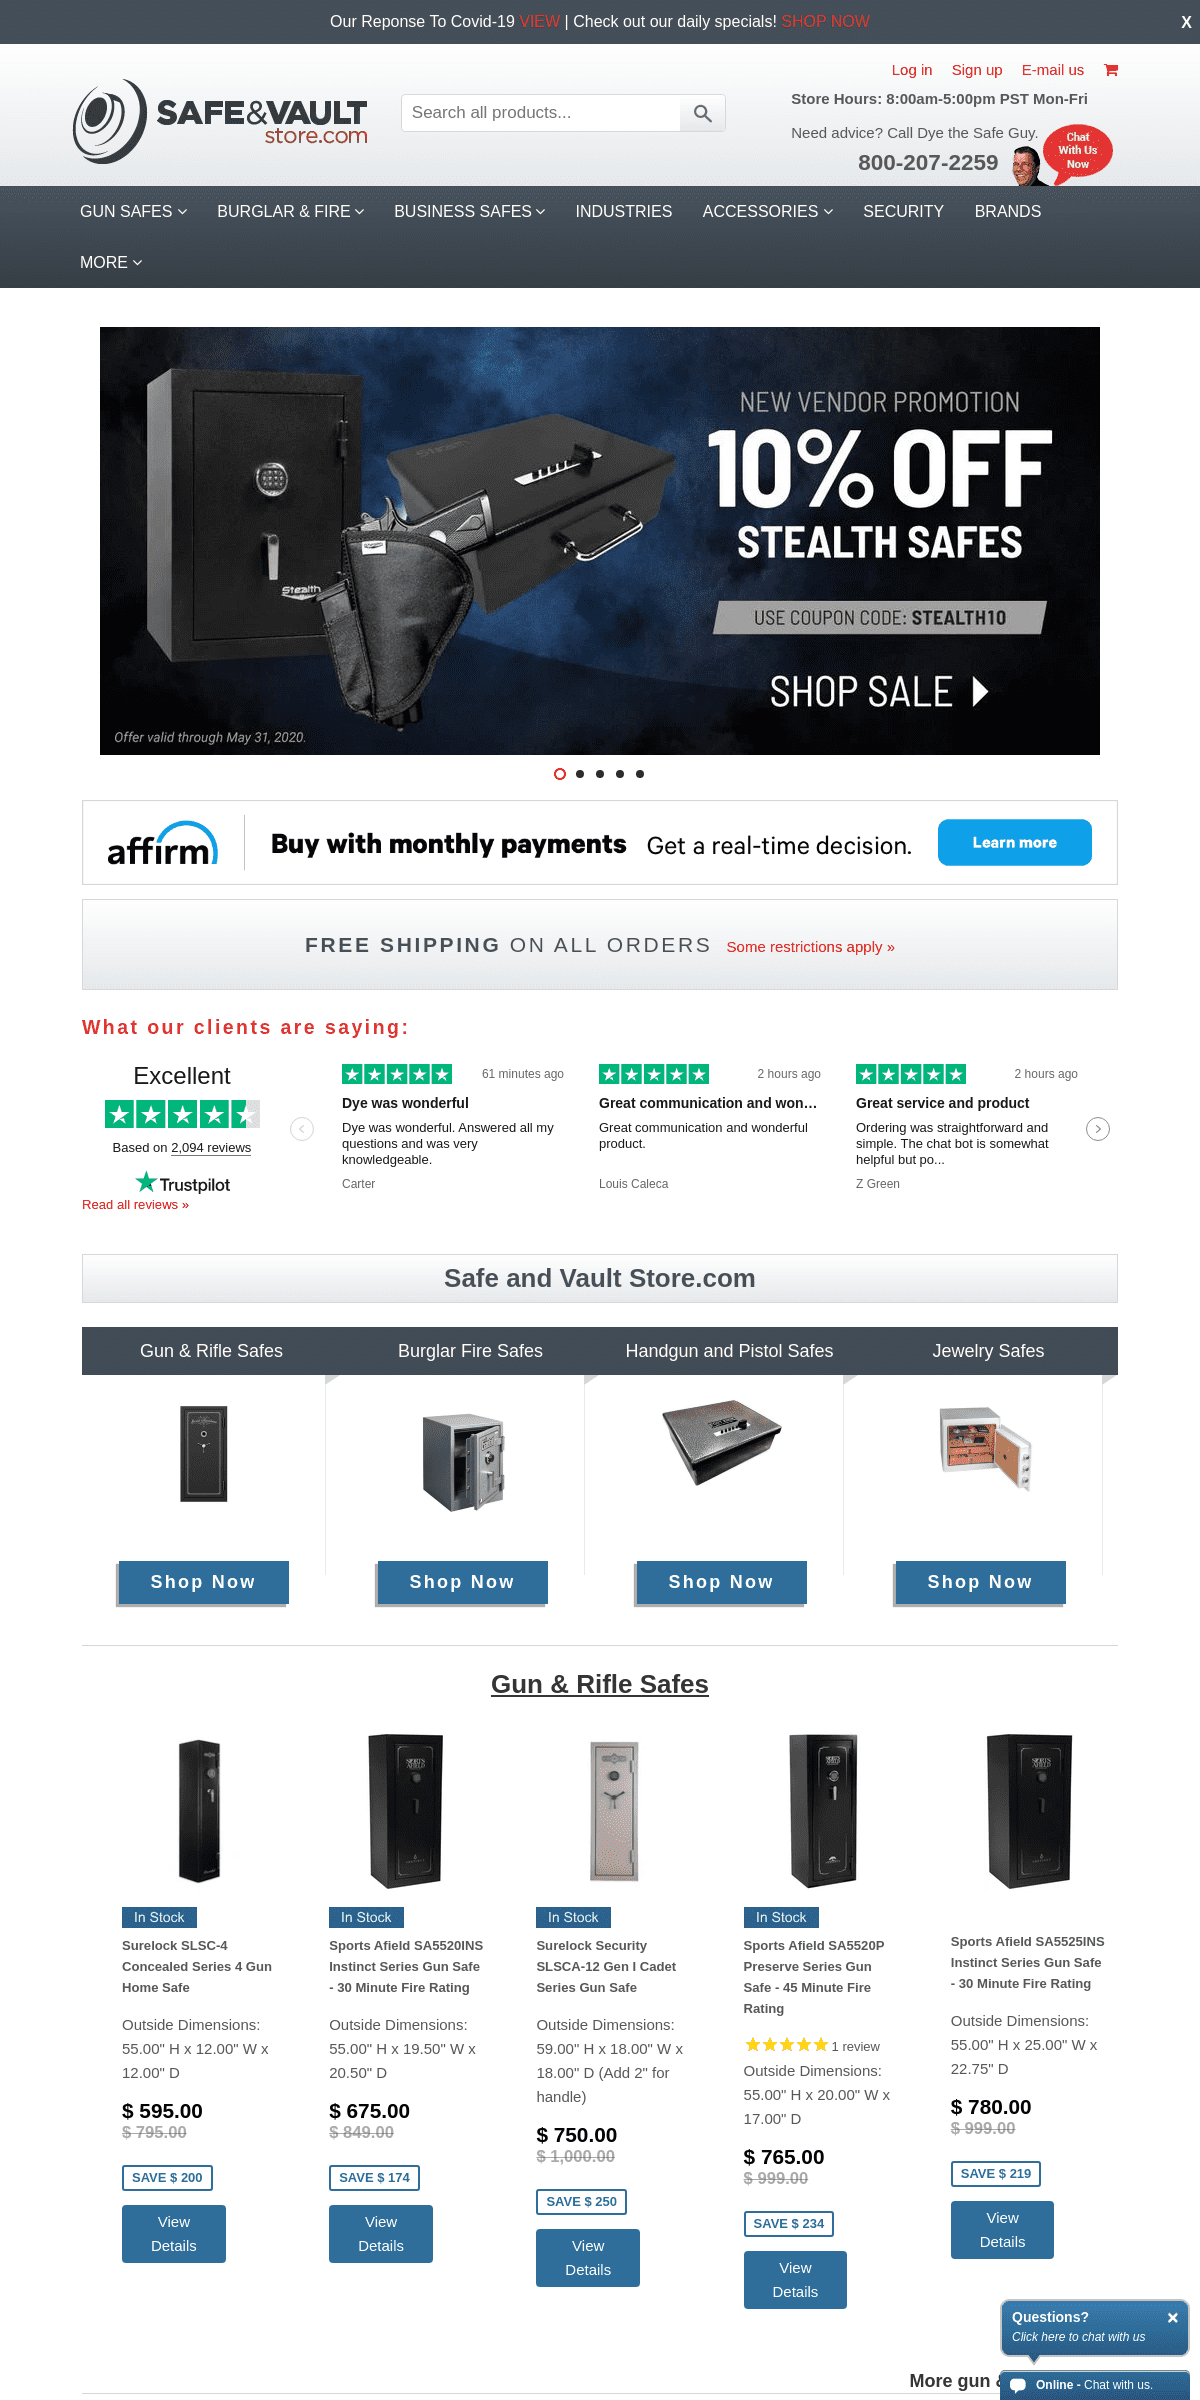 Gun Safes & Wall Safe Brands for Sale – Safe and Vault Store.com